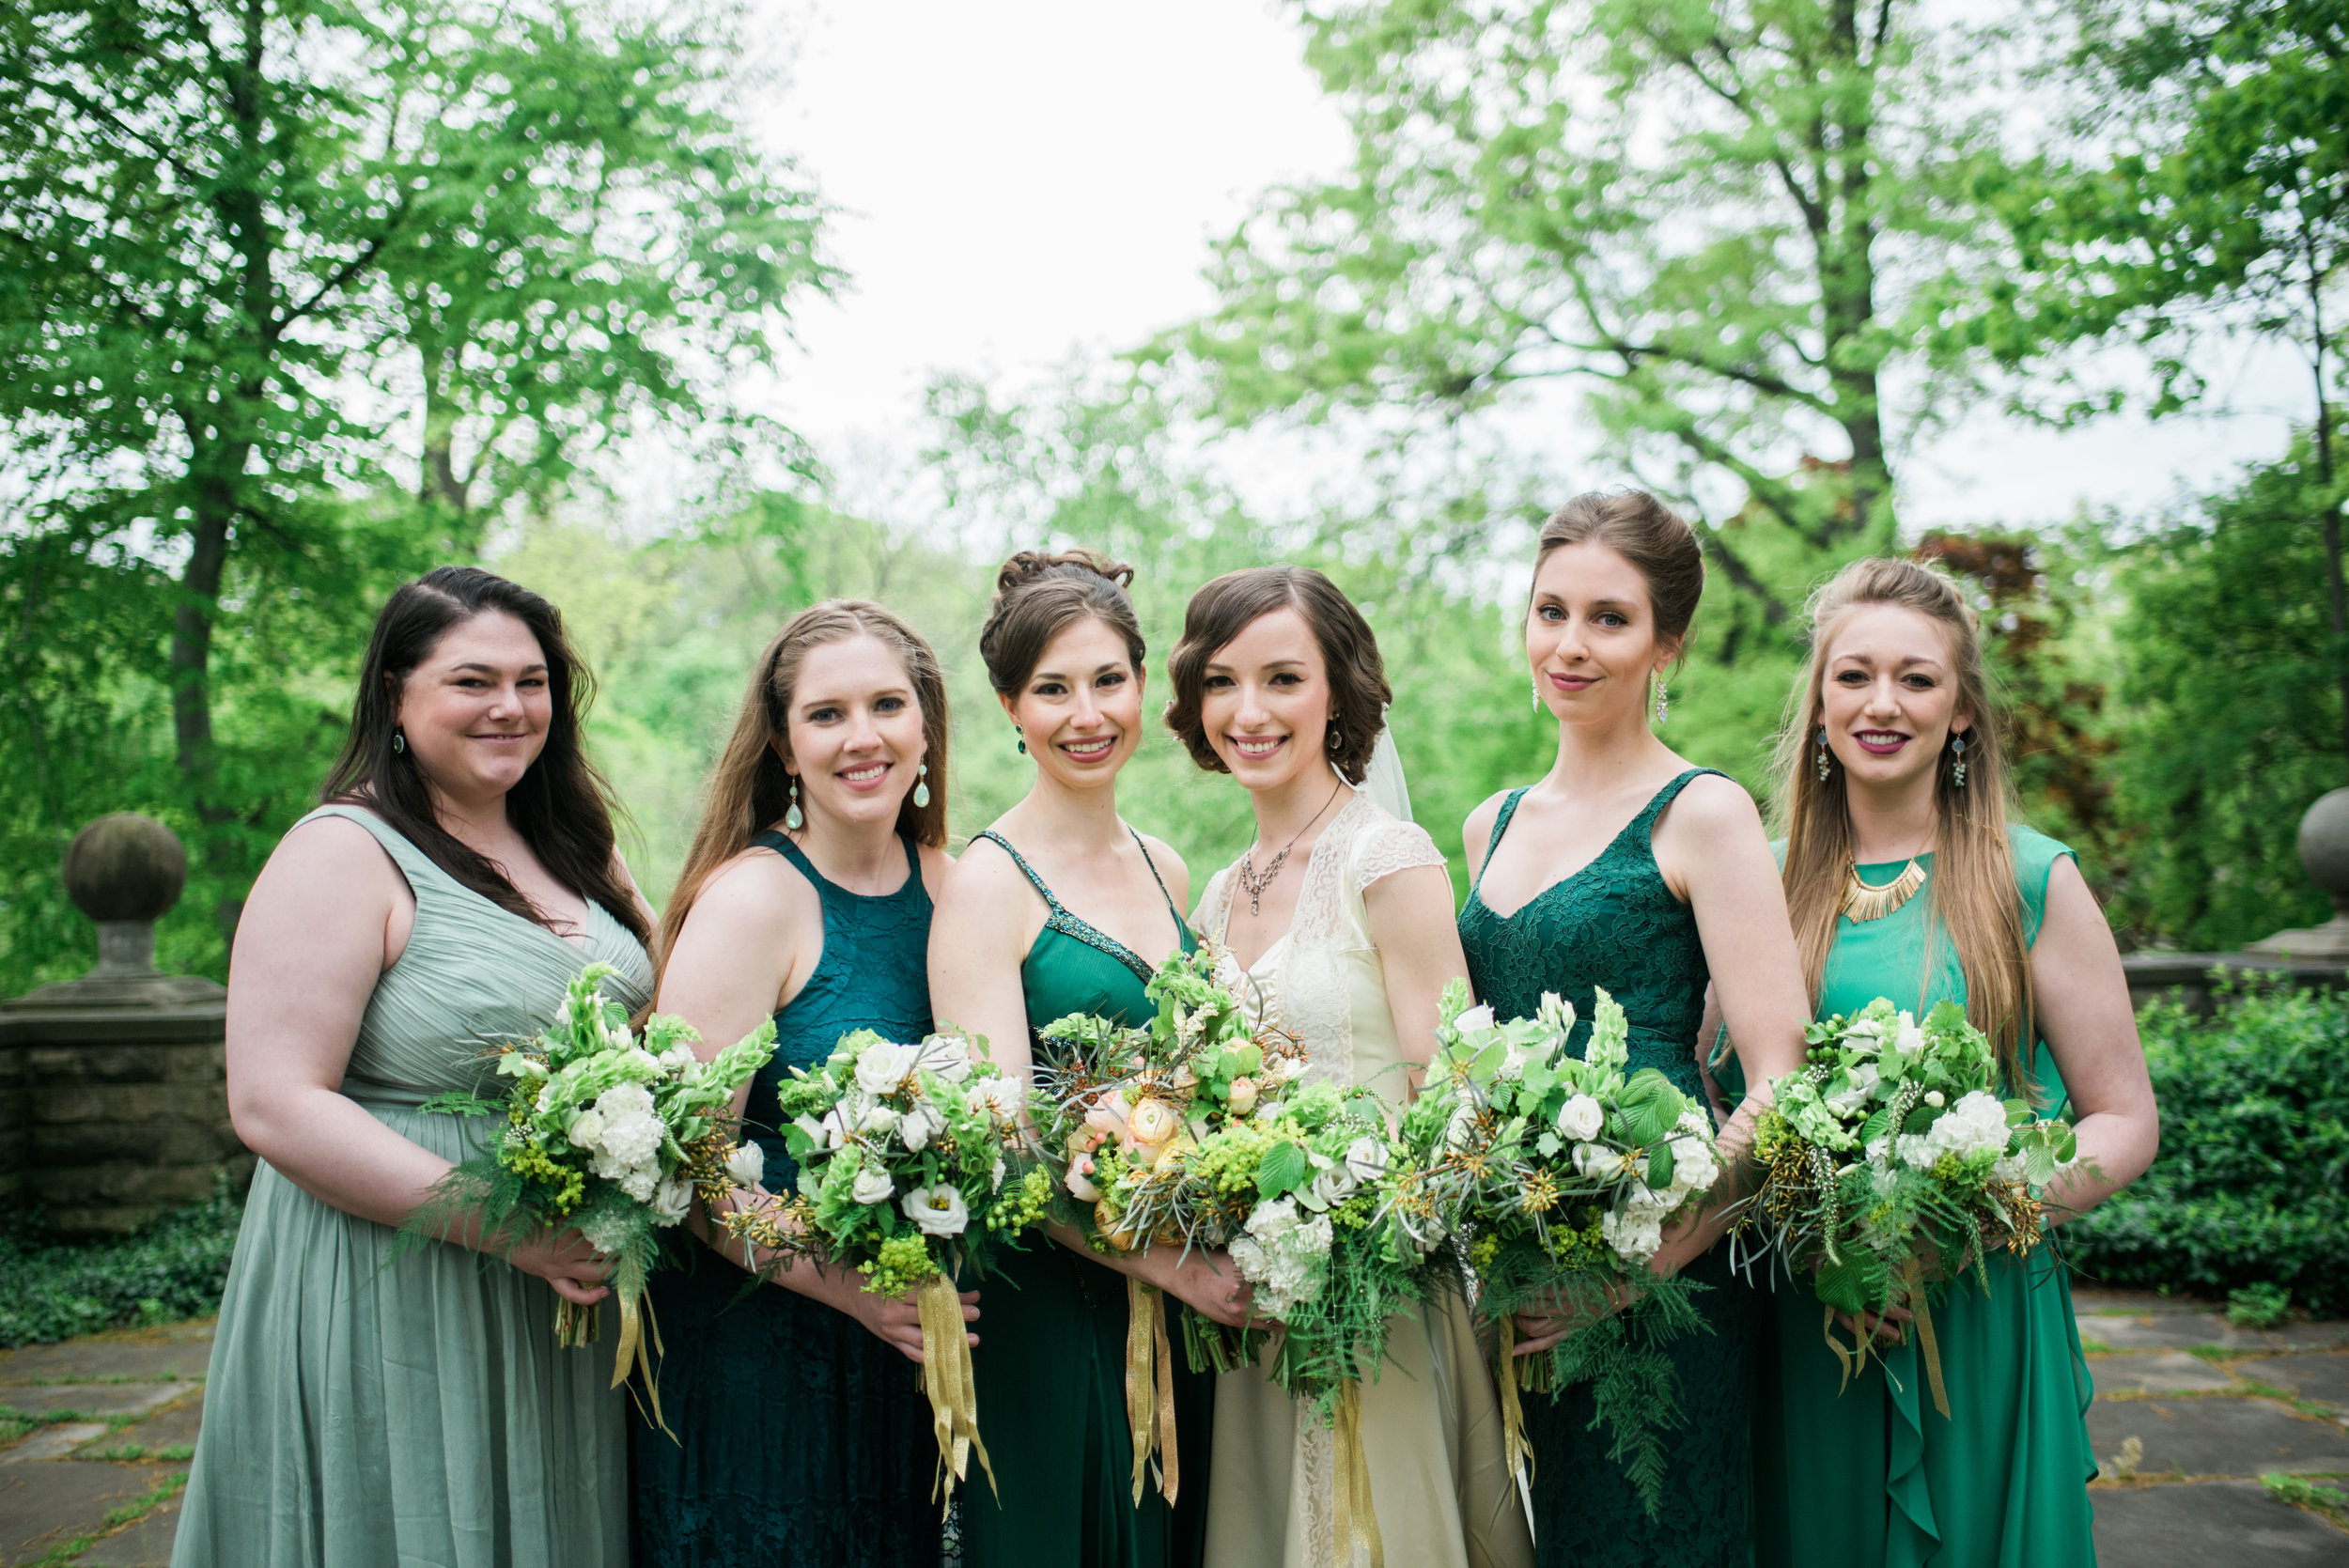 Emerald Isle bridesmaids.jpg